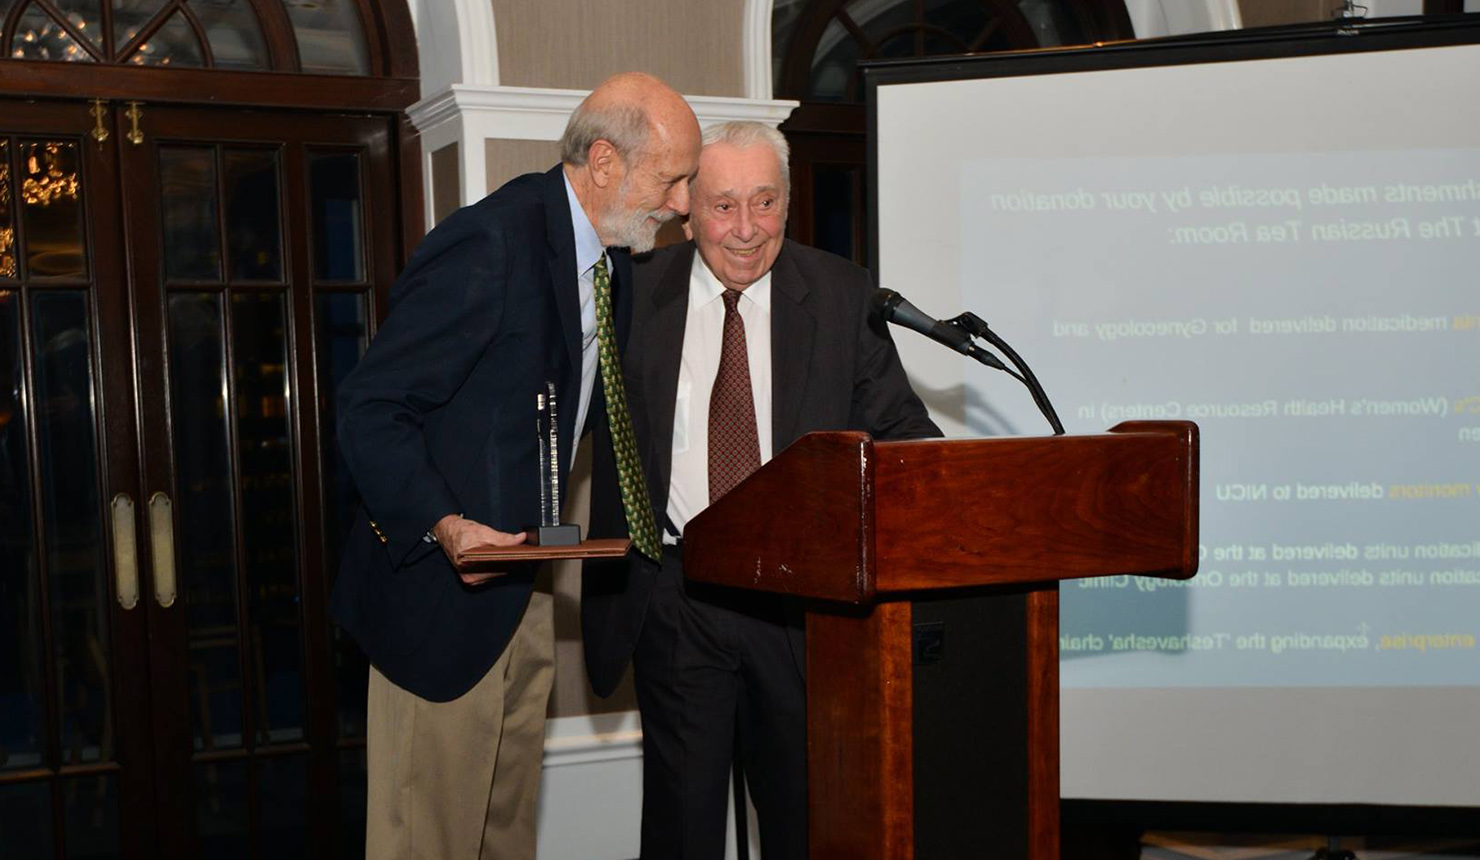 James C. Strickler, MD (left), and George A. Little, MD, FAAP (right), received their awards at an event at the Yale Club 在 New York City. (Photo courtesy of Action for Mothers and Children)